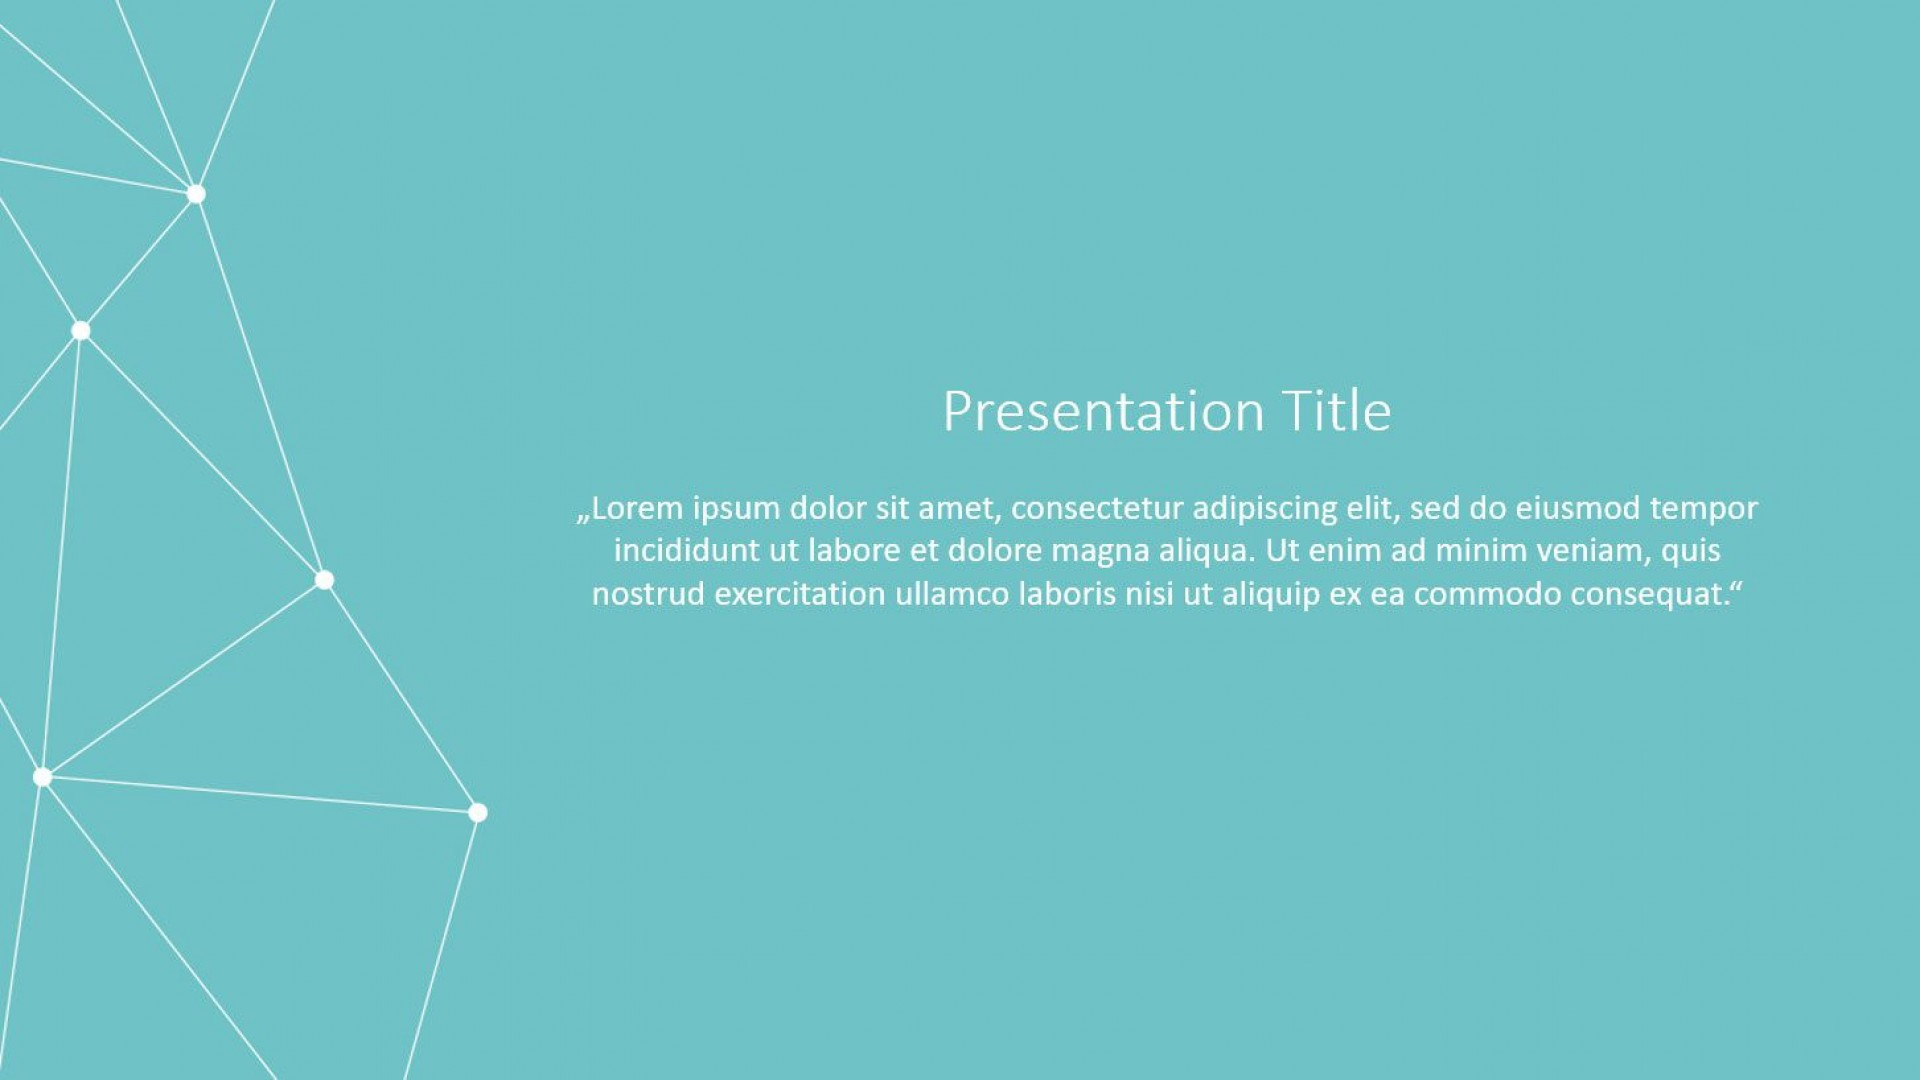 009 Singular Free Technology Powerpoint Template High Definition  Templates Animated Information Download1920